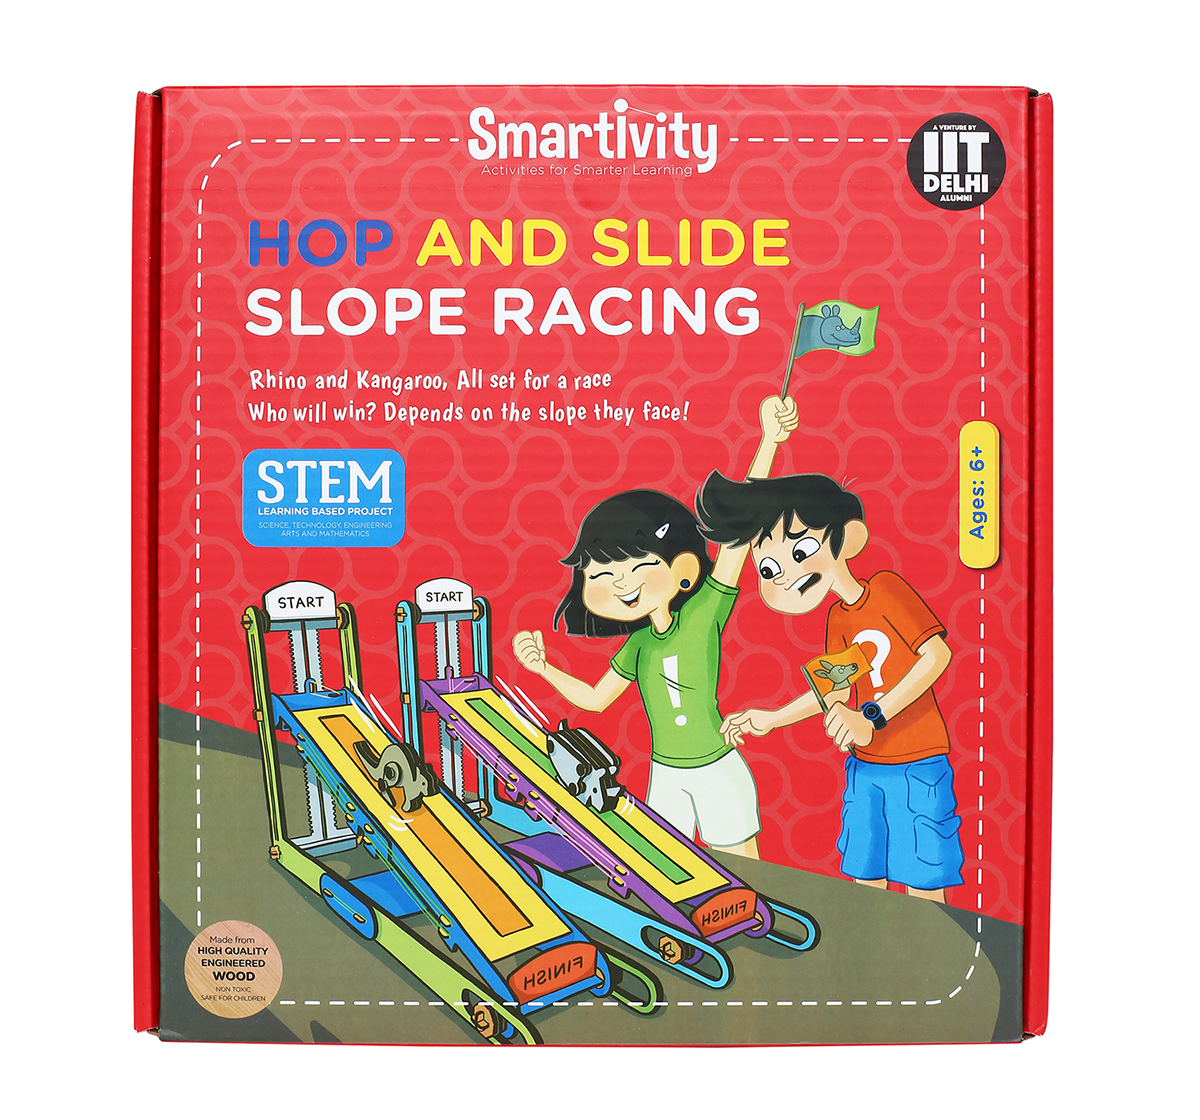 Smartivity | Smartivity Hop and Slide Slope Racing:  Stem, Learning, Educational and Construction Activity Toy Gift for Kids age 6Y+  (Multi-Color)